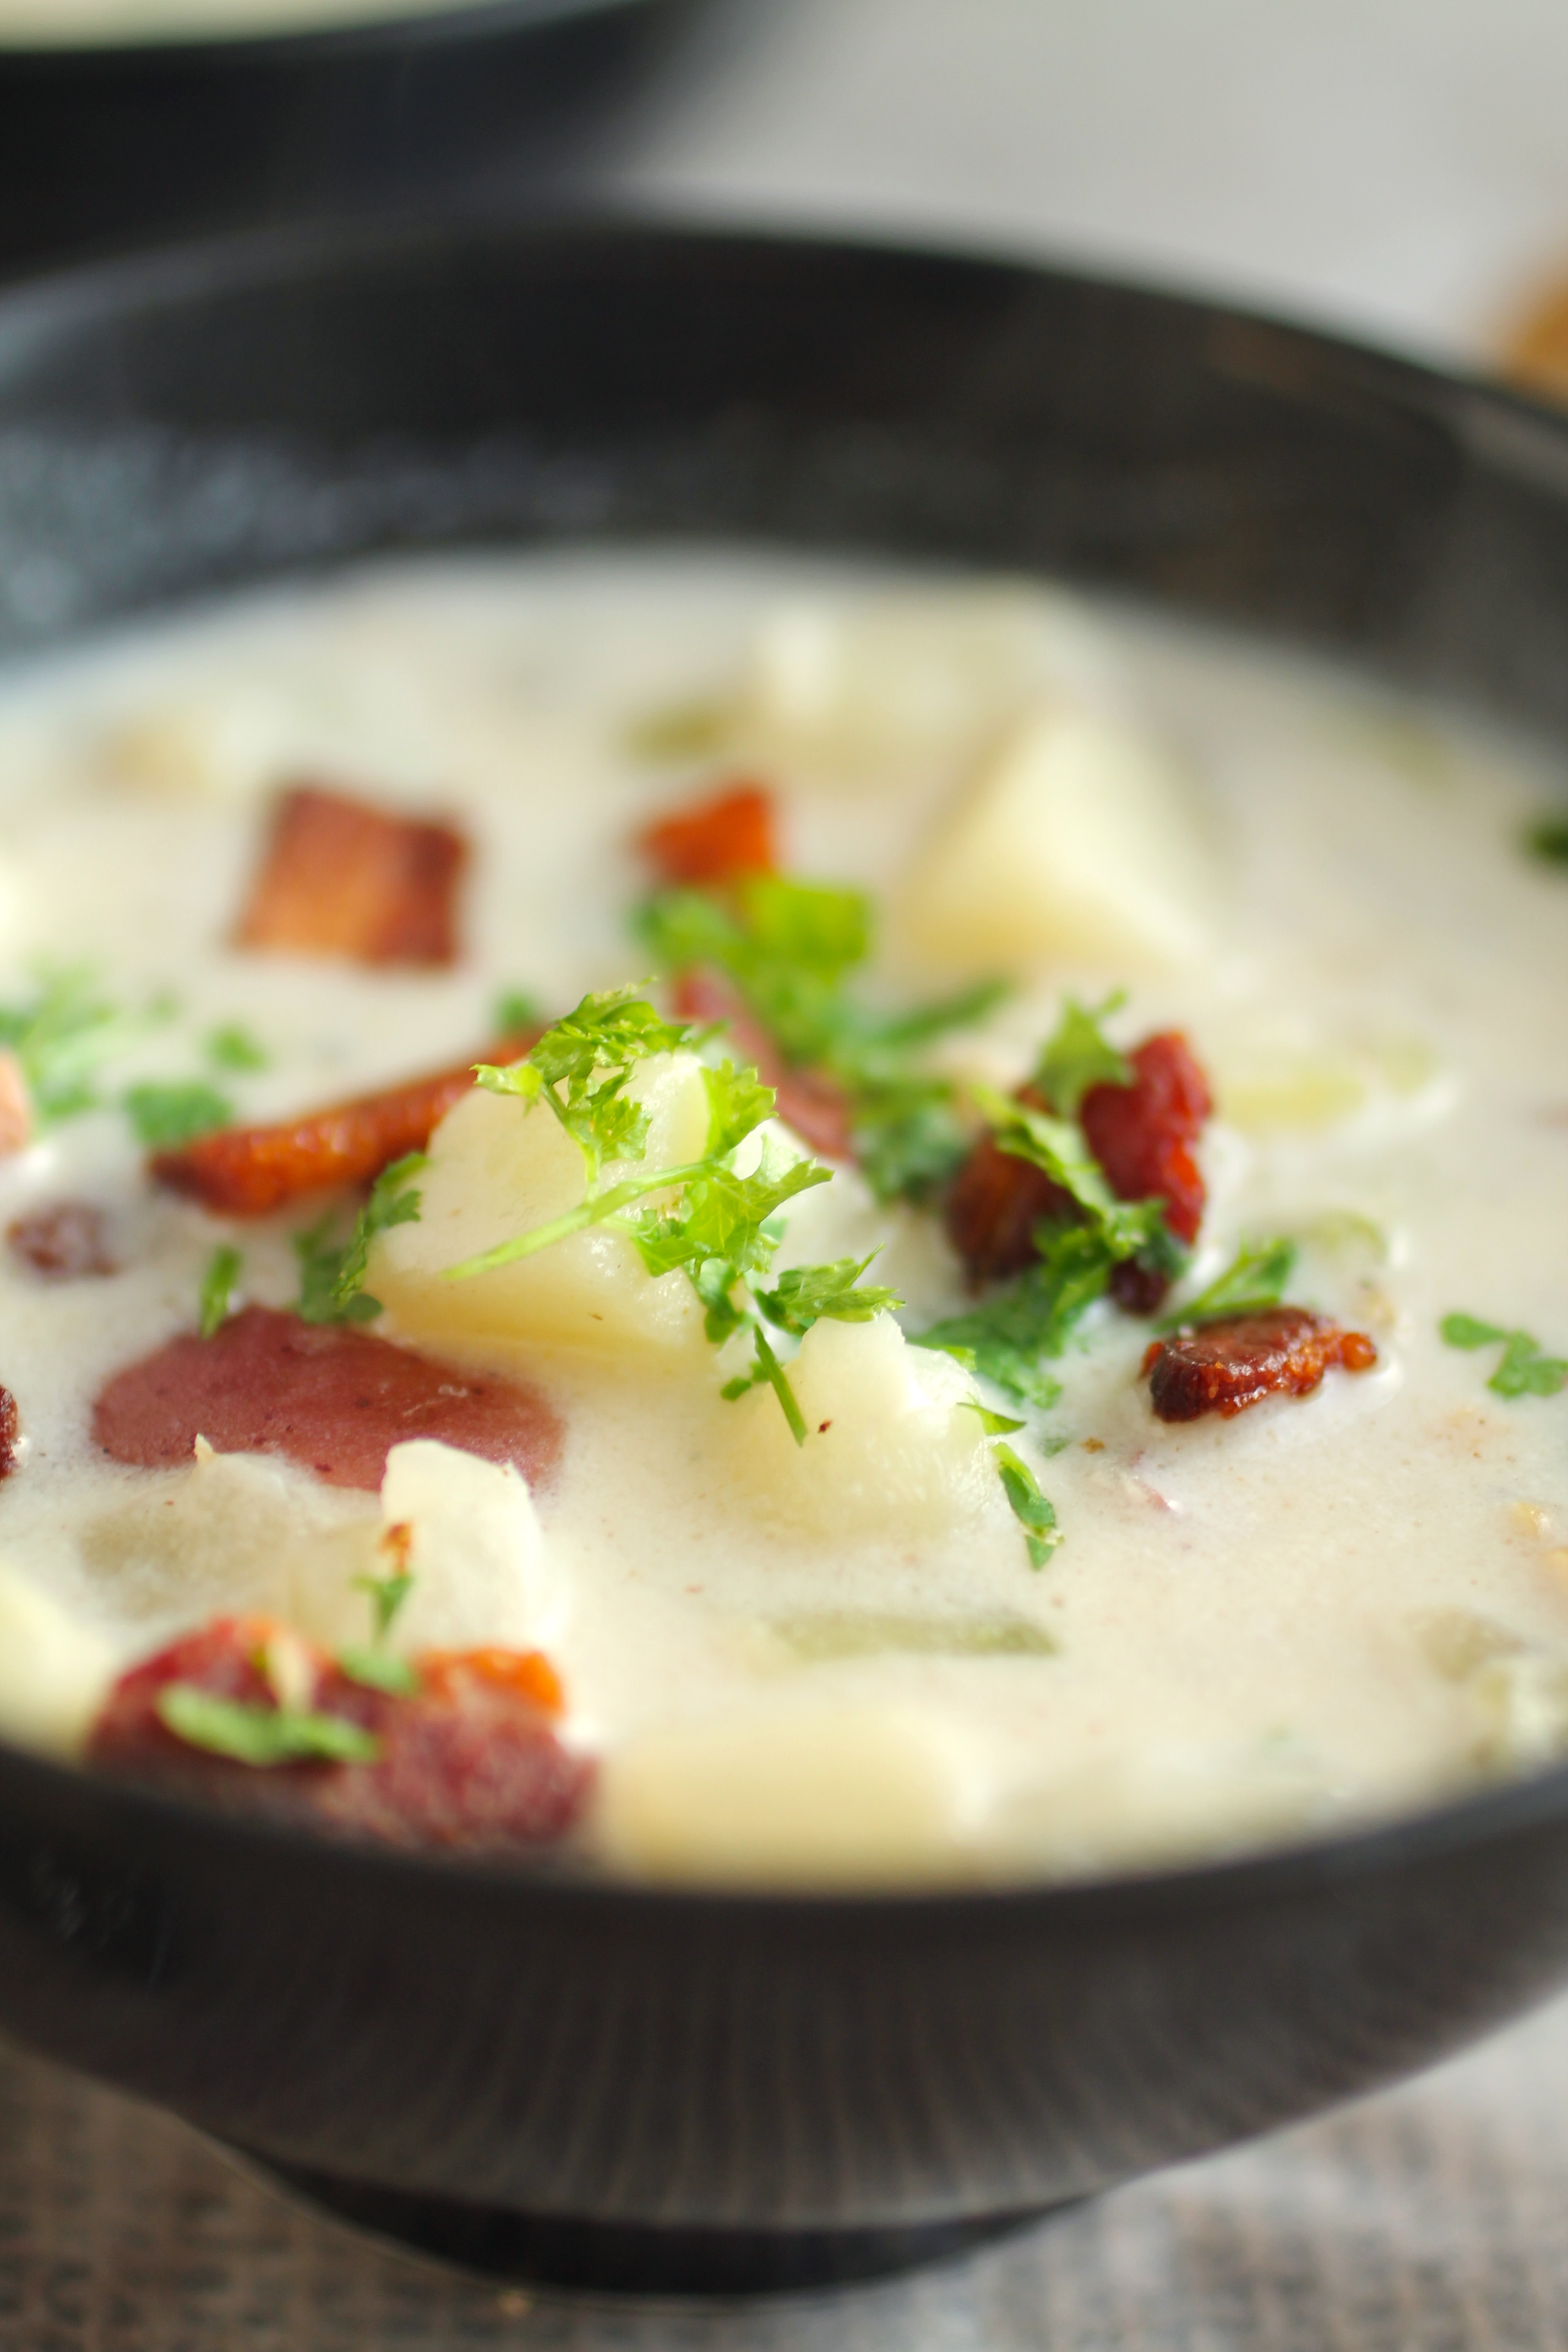 New England Clam Chowder | Homemade New England Clam Chowder is easier than you think - whip some up in less than an hour with this easy homemade clam chowder recipe!